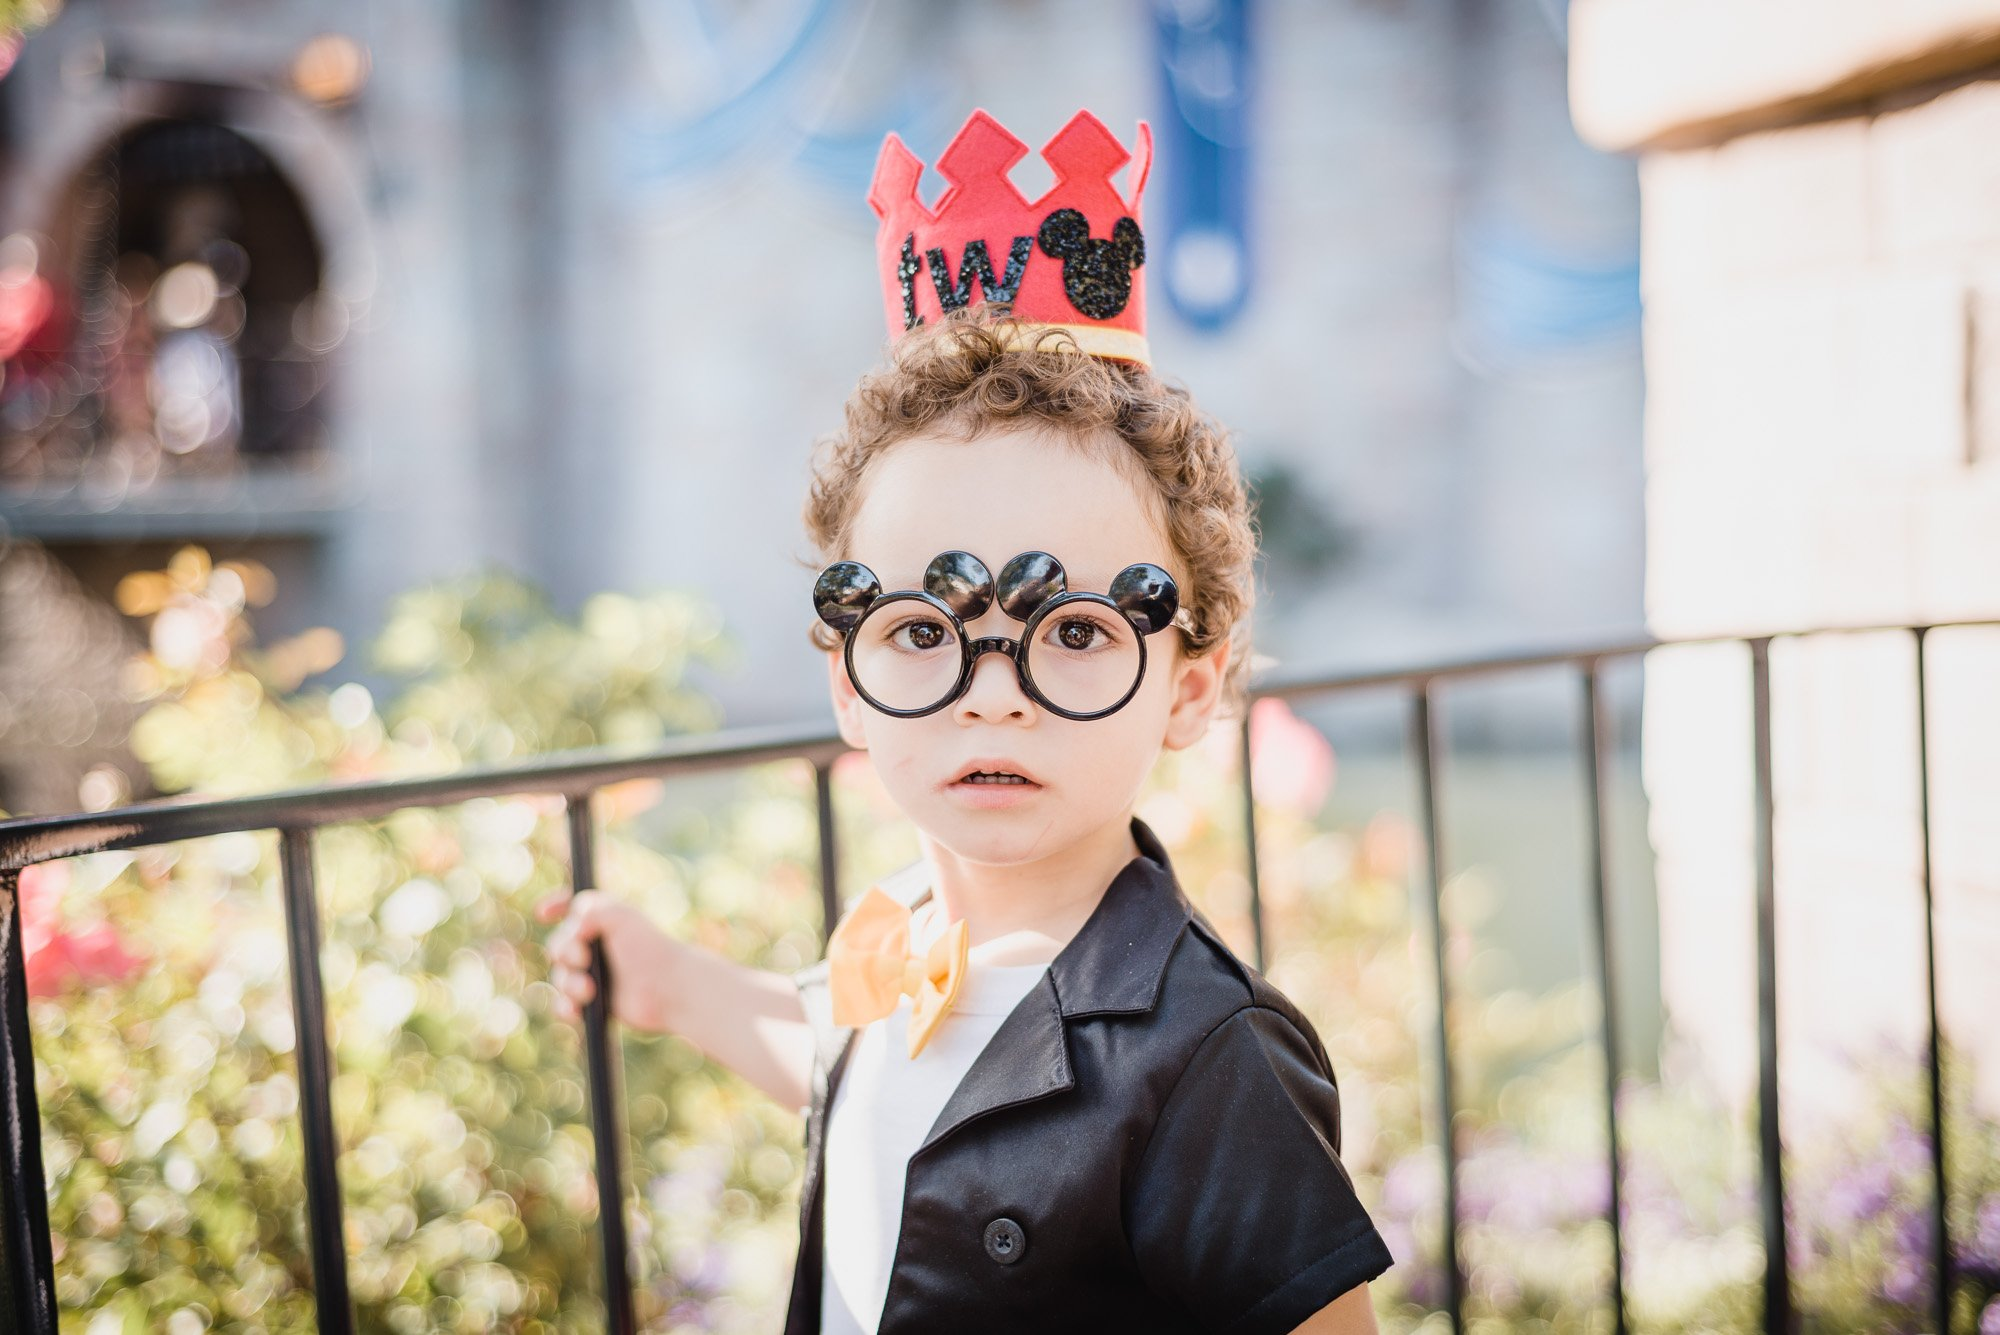 Diaz child with a crown and glasses